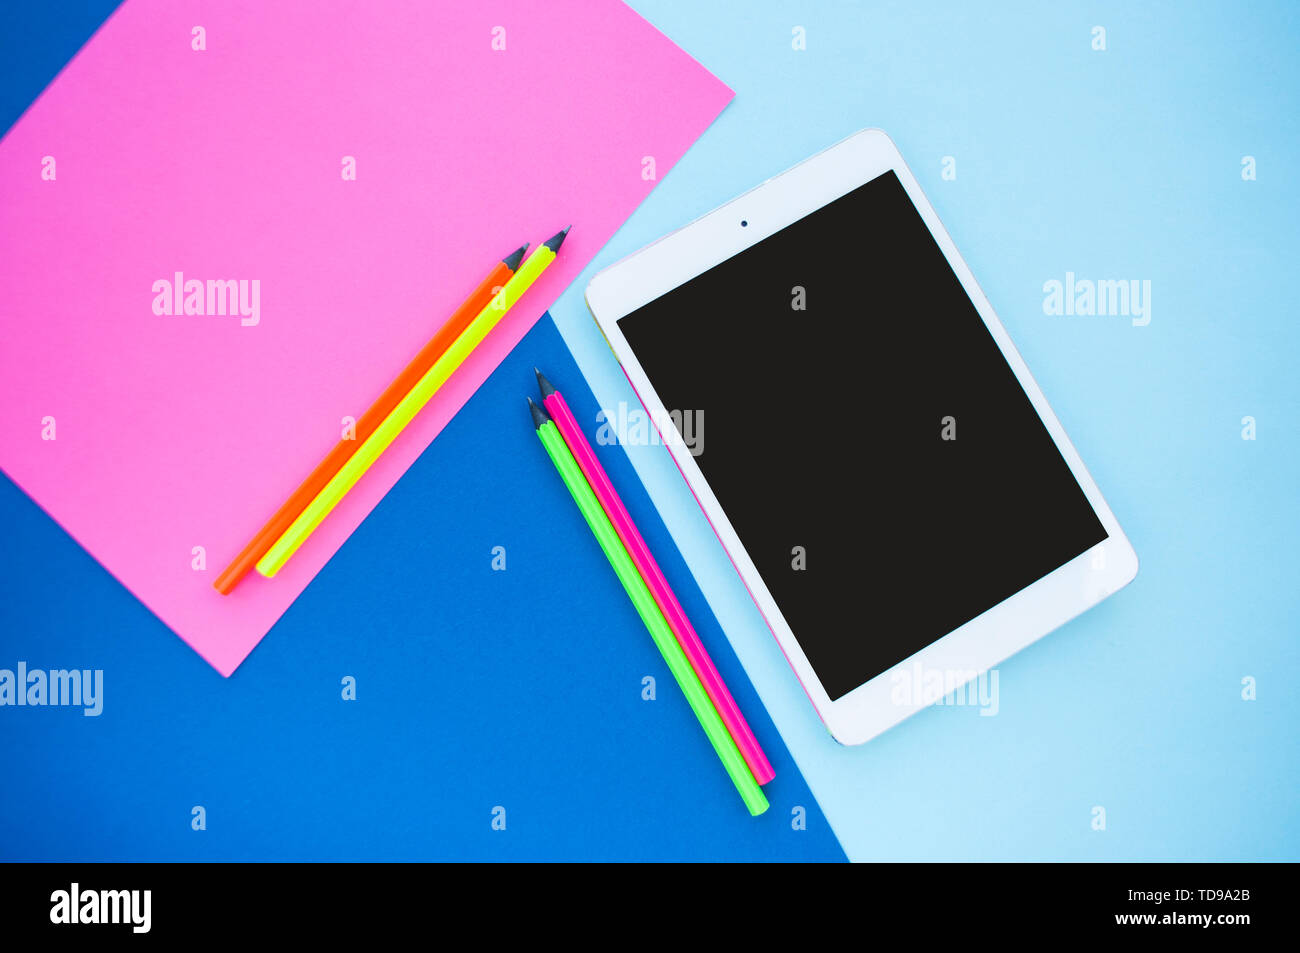 Colorful paper, neon pencils and tablet on blue and pink background with text space. Back to school concept. Stock Photo